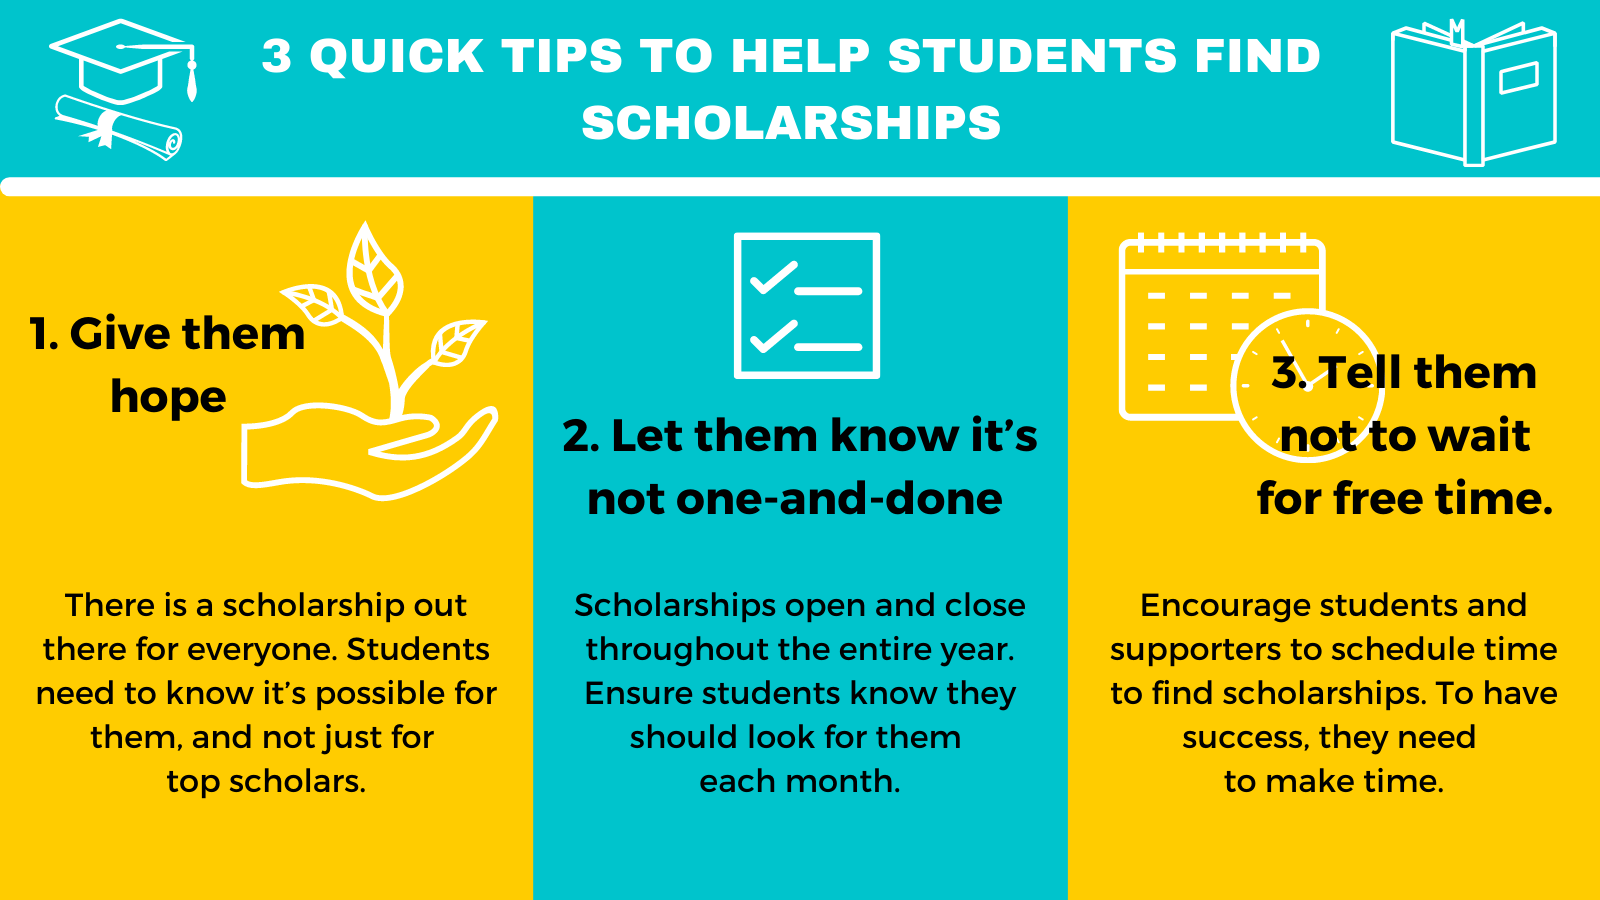 Infographic containing 3 quick tips to help students find scholarships: 1. Give them hope. 2. Let them know it's not a one-and-done. 3.  3. Tell them not to wait for free time.